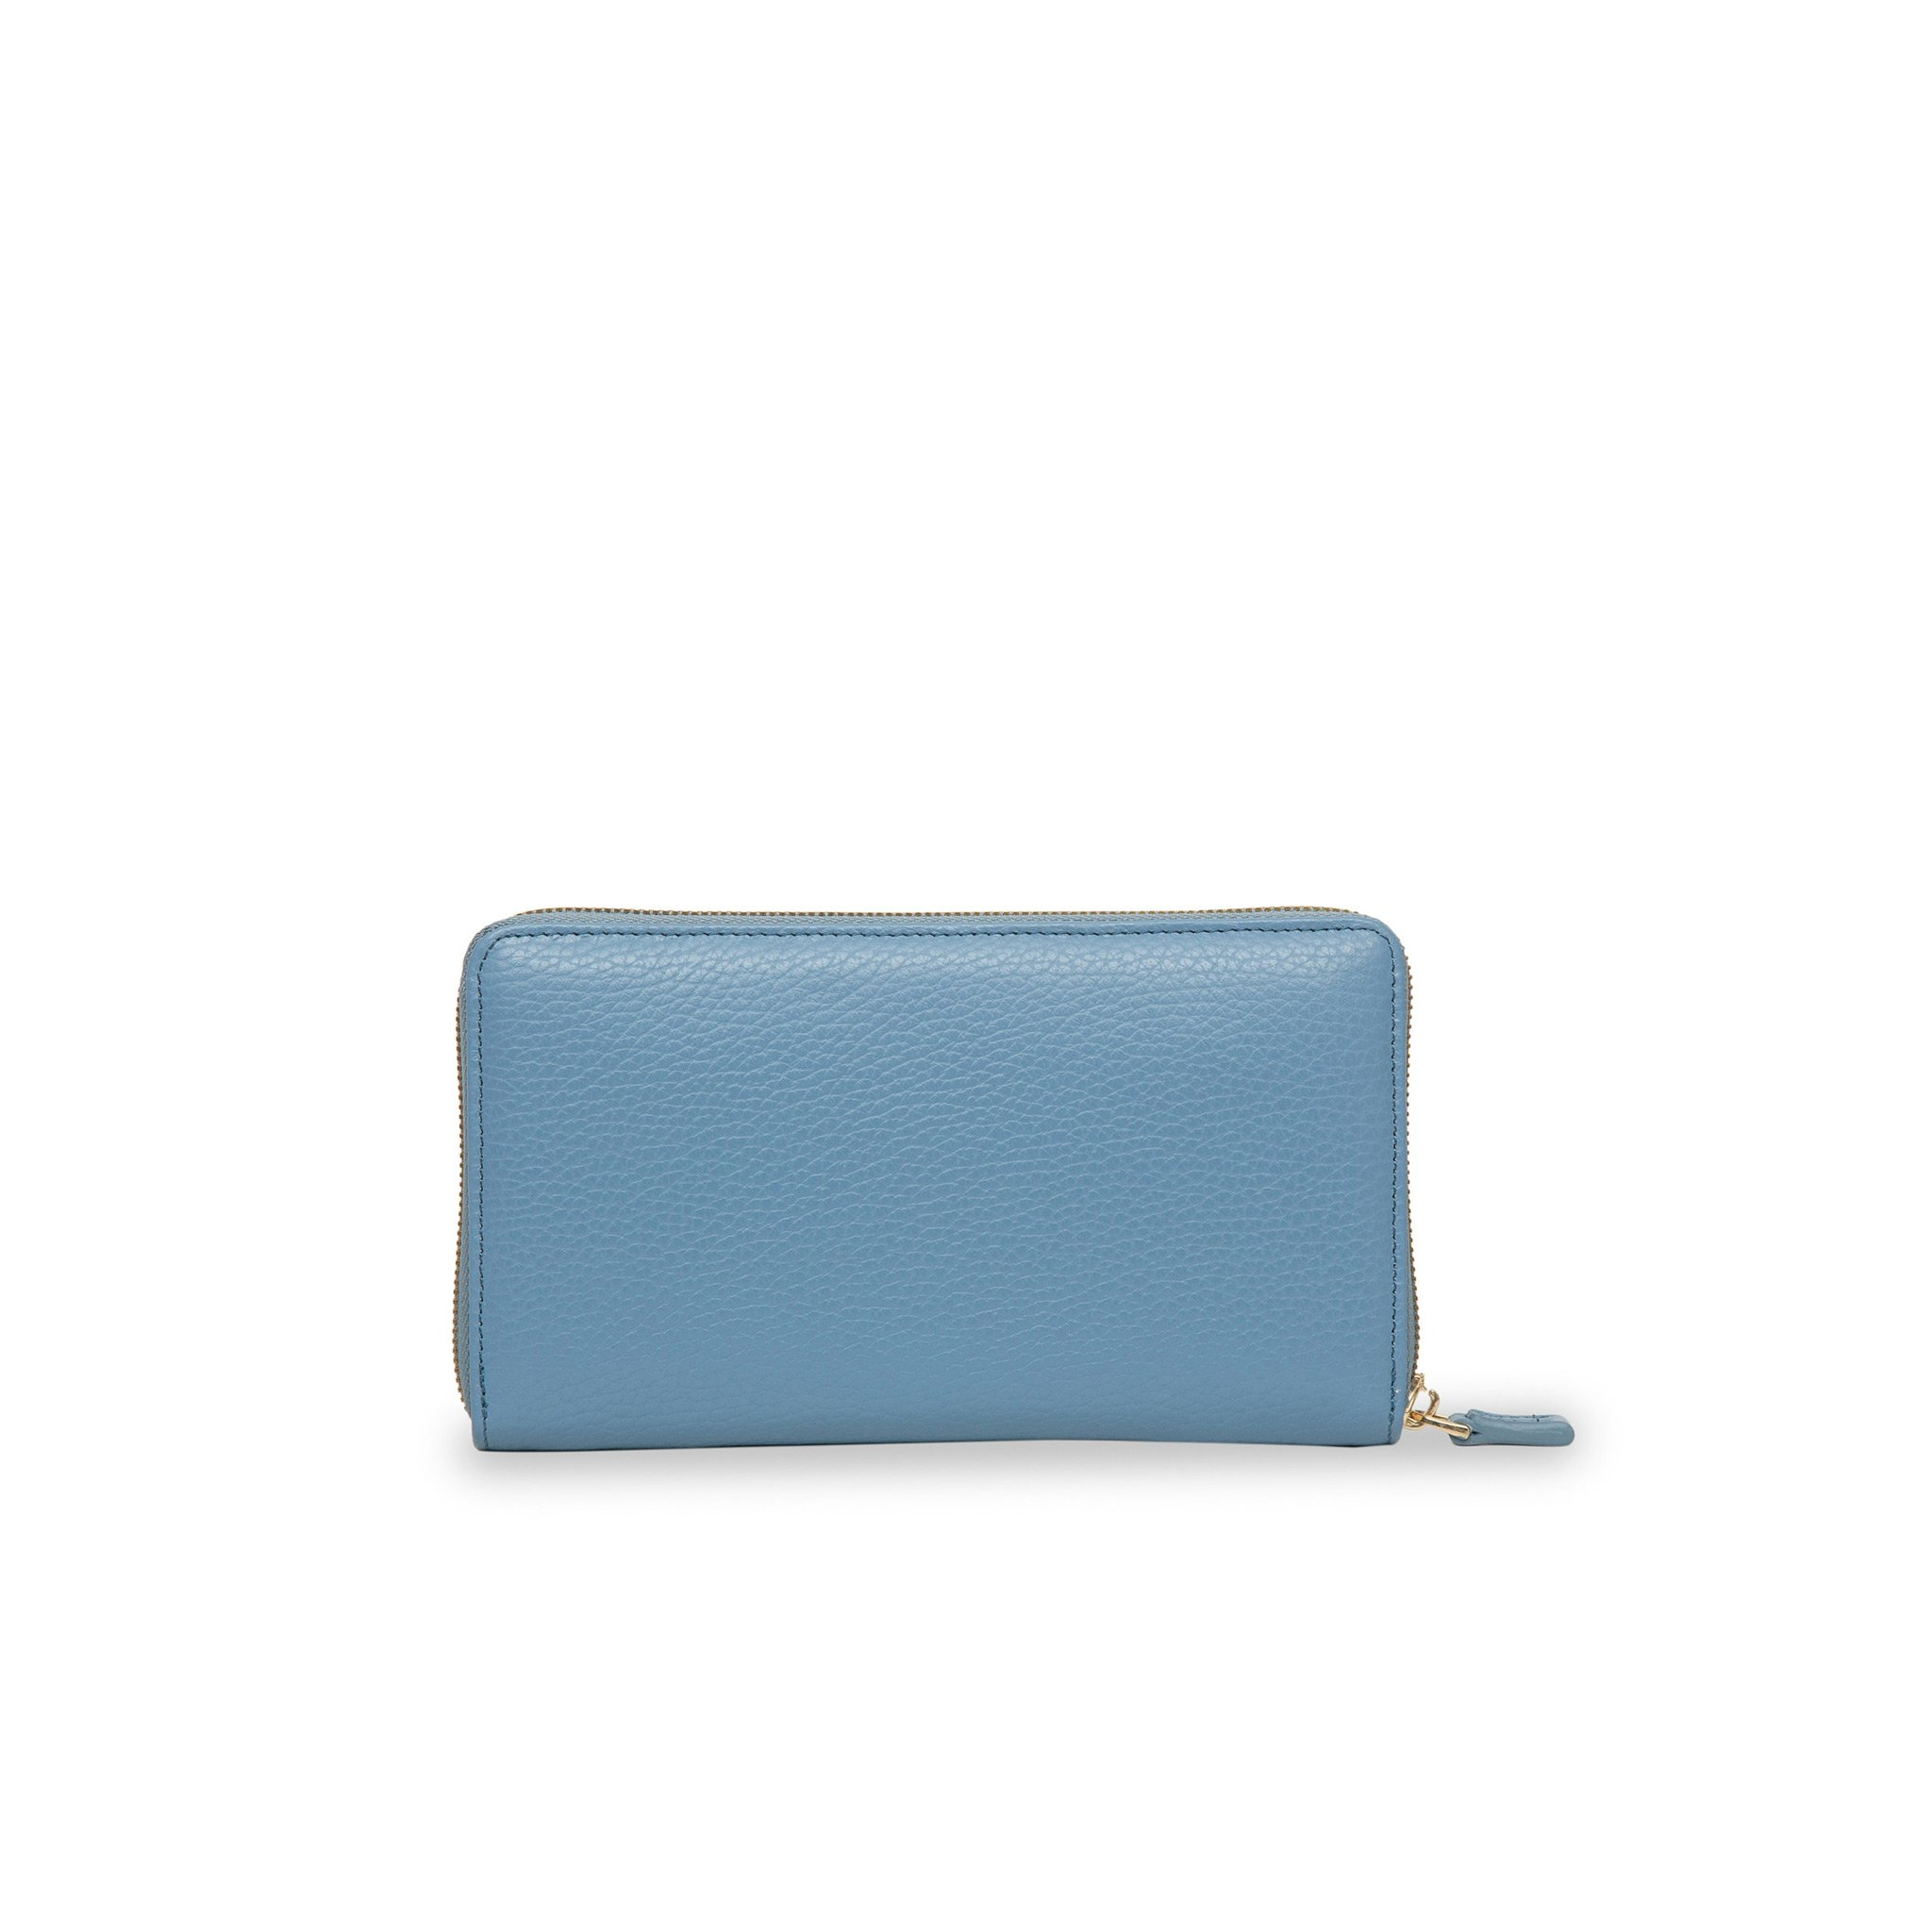 Rimini Zip Around leather Wallet - Powder